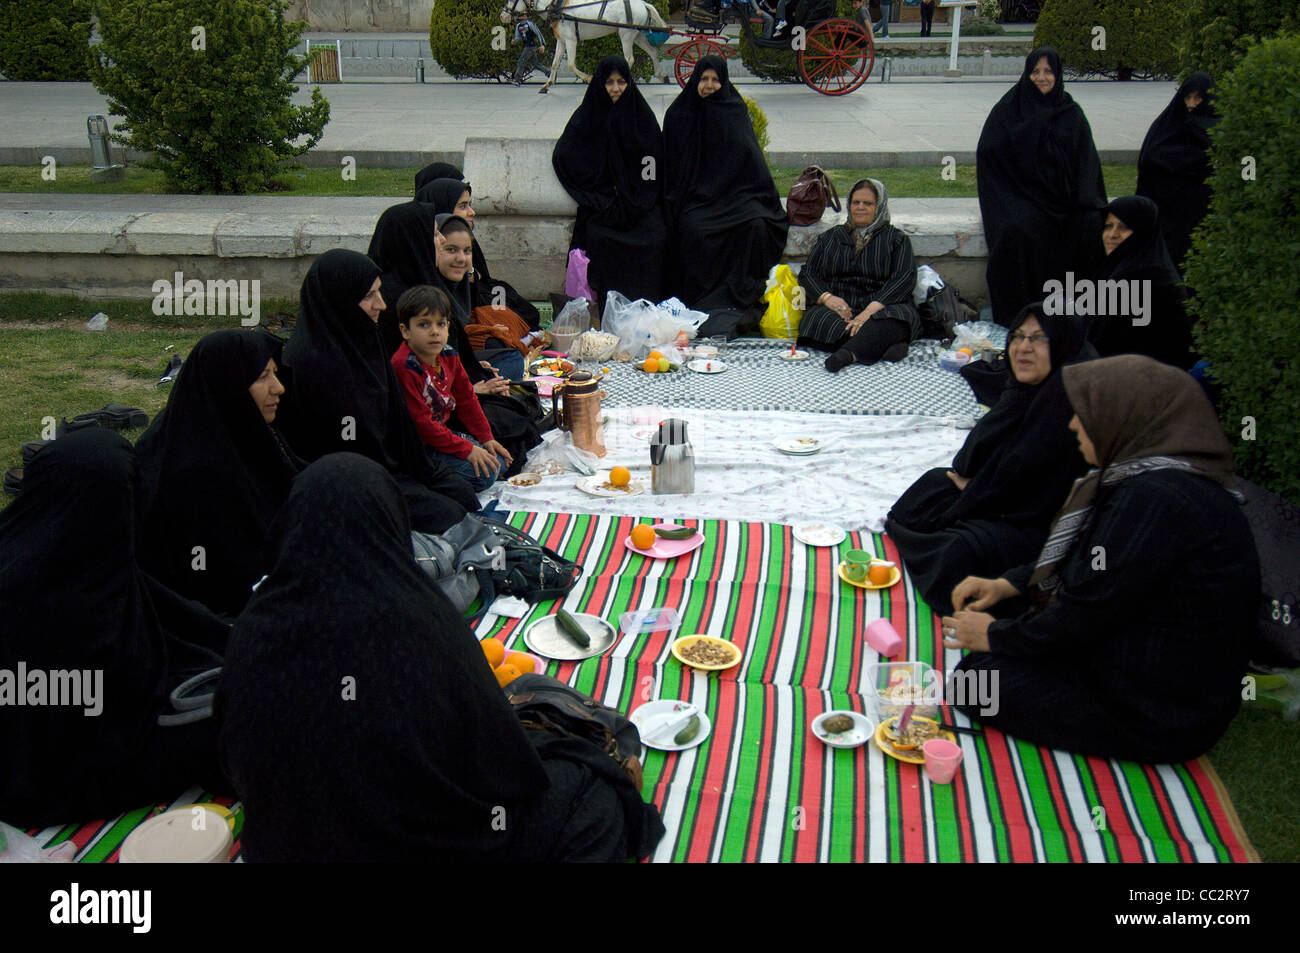 A group of ladies and some small children enjoy a Thursday evening picnic on the Maidan in Isfahan, Iran. - Stock Image